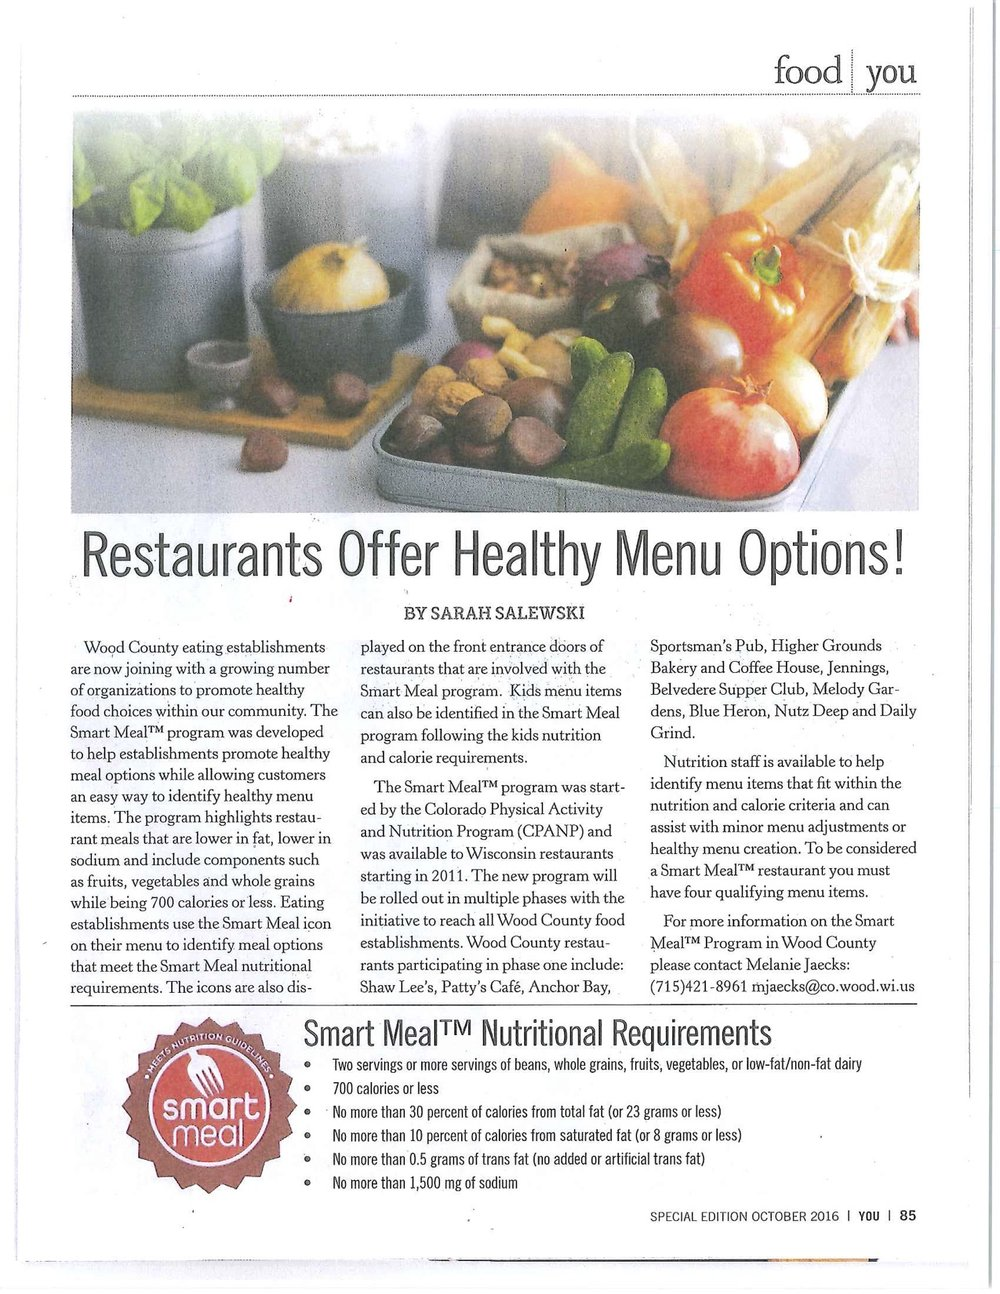 """Restaurant Offer Healthy Menu Options"" By Sarah Salewski YOU Magazine, Special Edition October 2016"